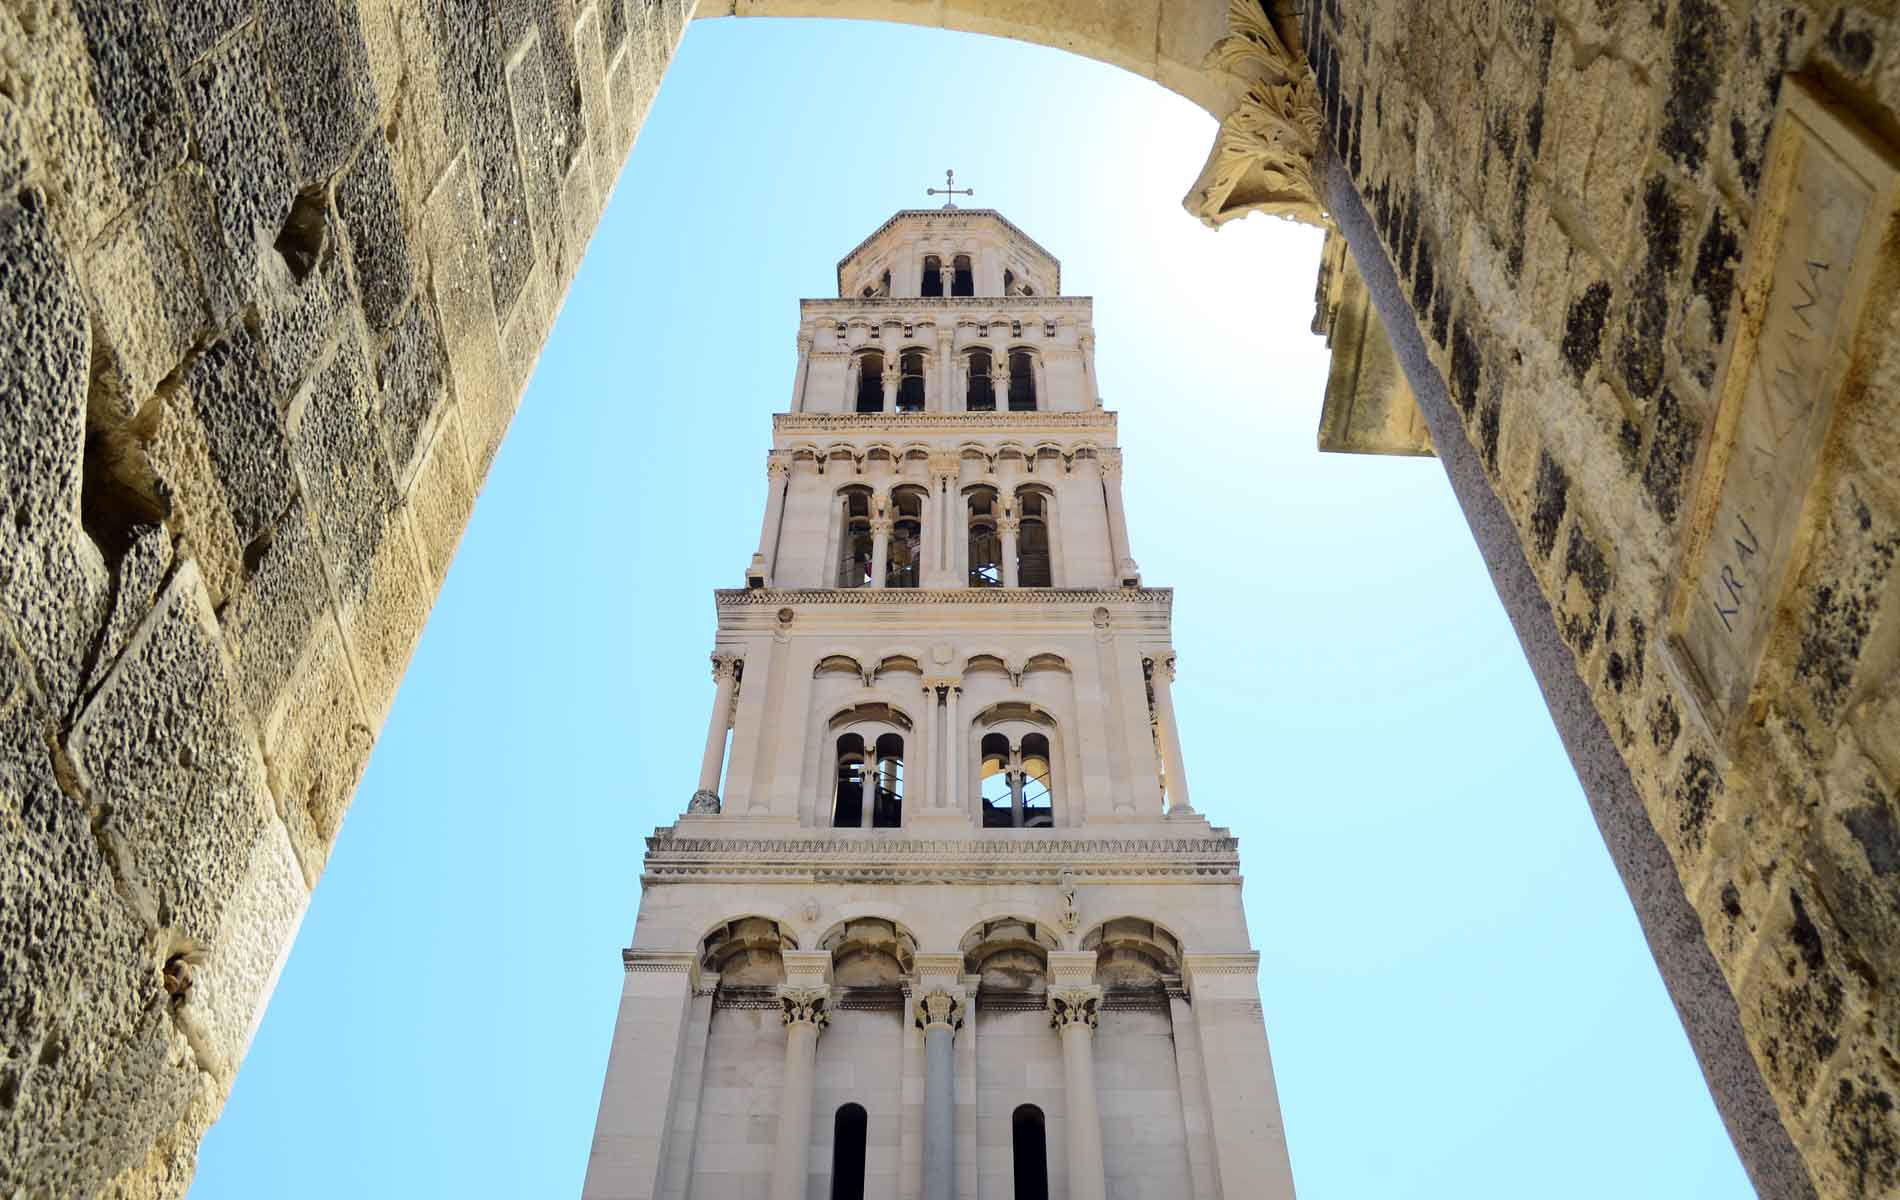 The bell tower in Diocletian's Palace in Split, Croatia